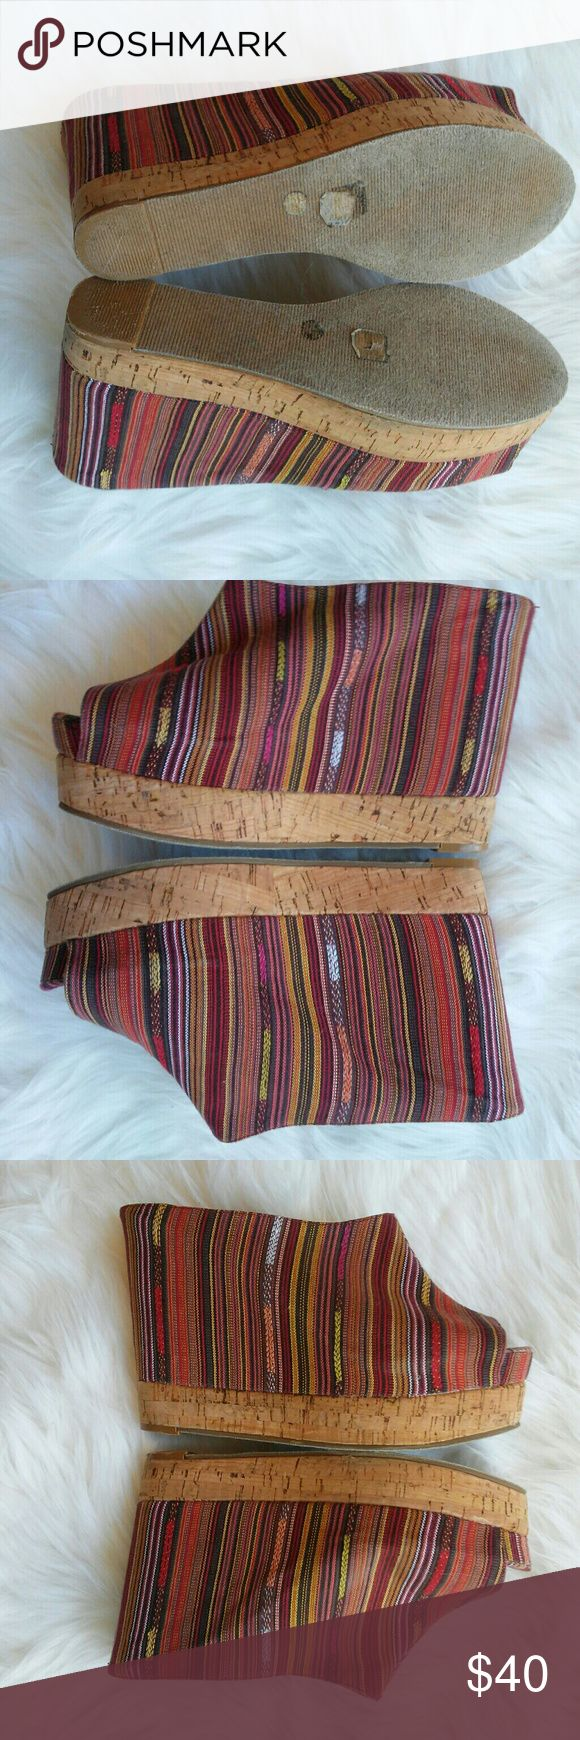 Chinese Laundry Stripe Wedge I love the tribal/ boho look!  *New condition- no marks *minimal scuff of back of bottom heels *open toe *cork style heel  Bundle to save! Make an offer.  Let me know if you have questions Chinese Laundry Shoes Wedges